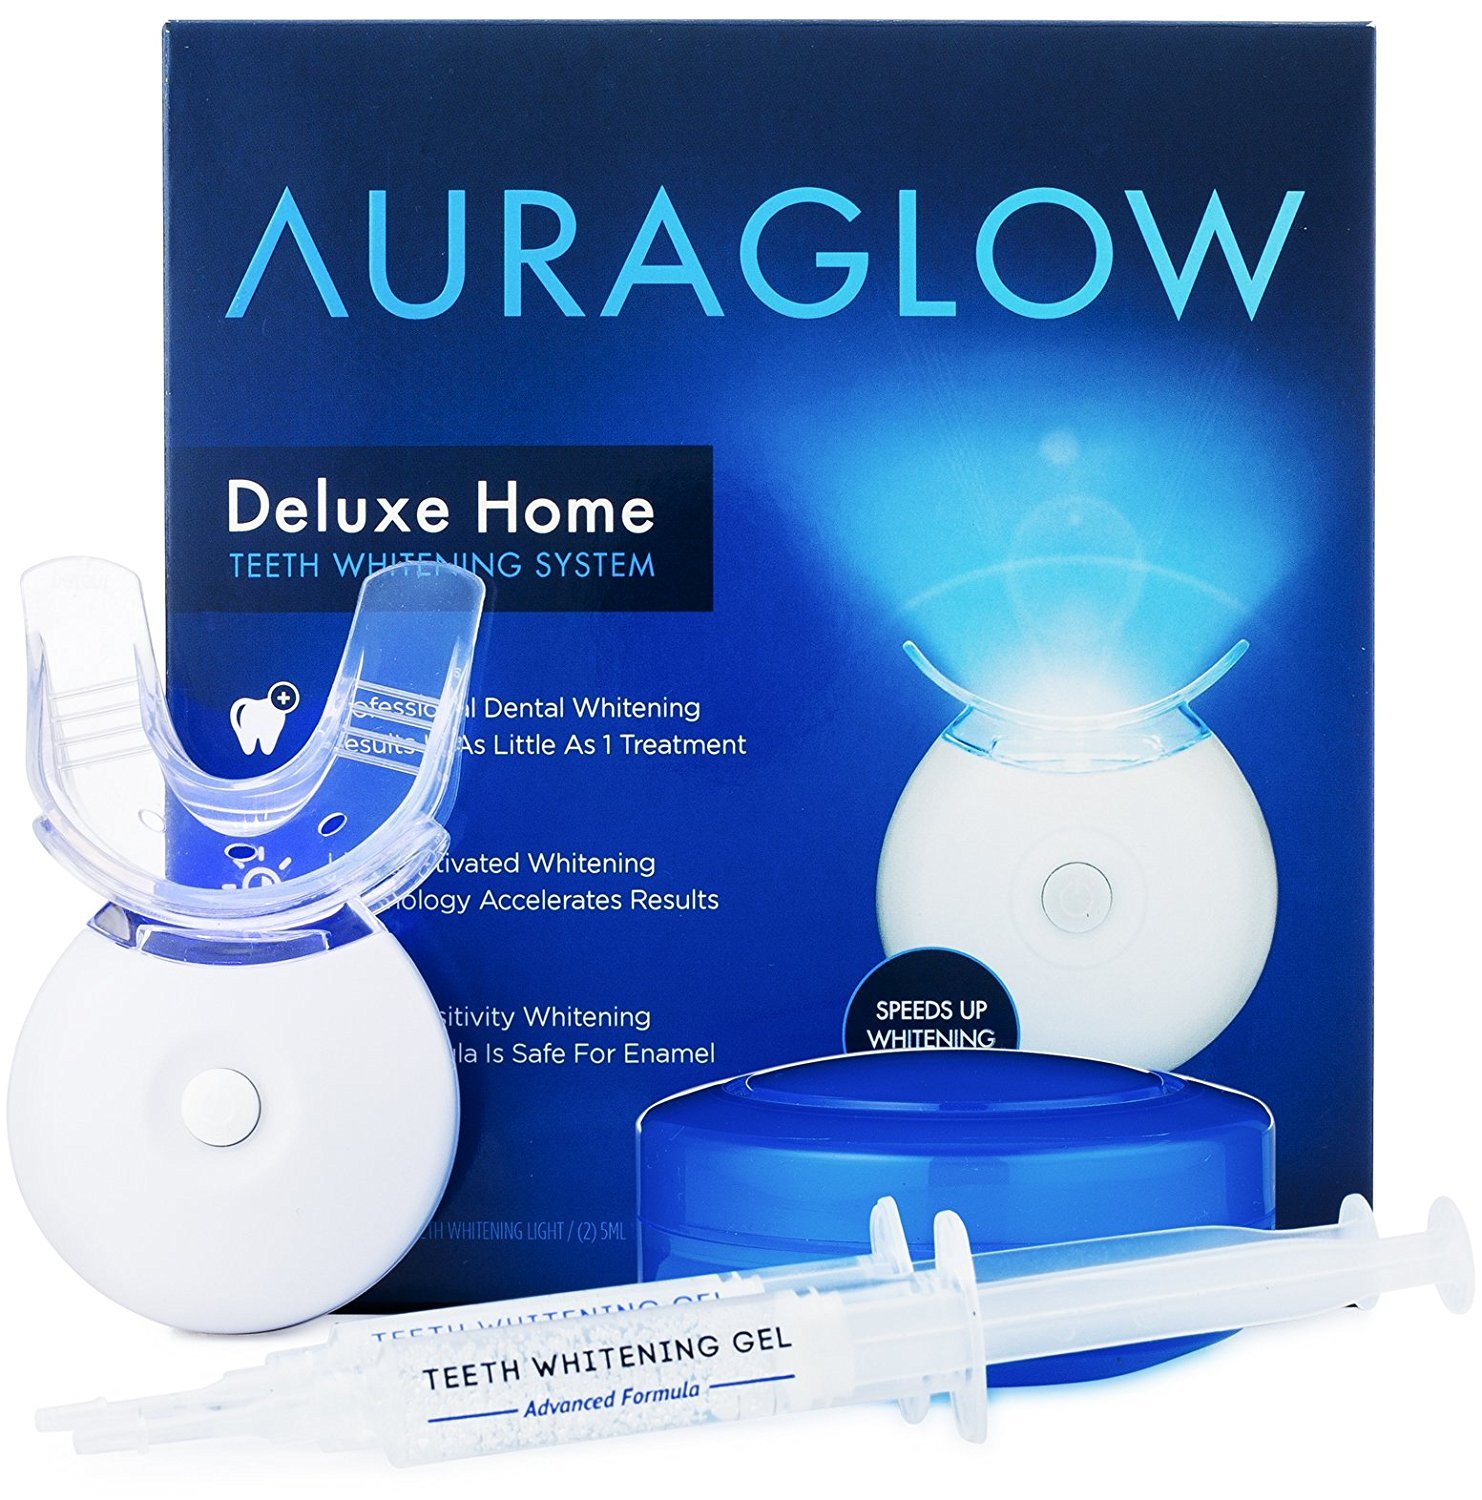 AuraGlow Teeth Whitening Kit